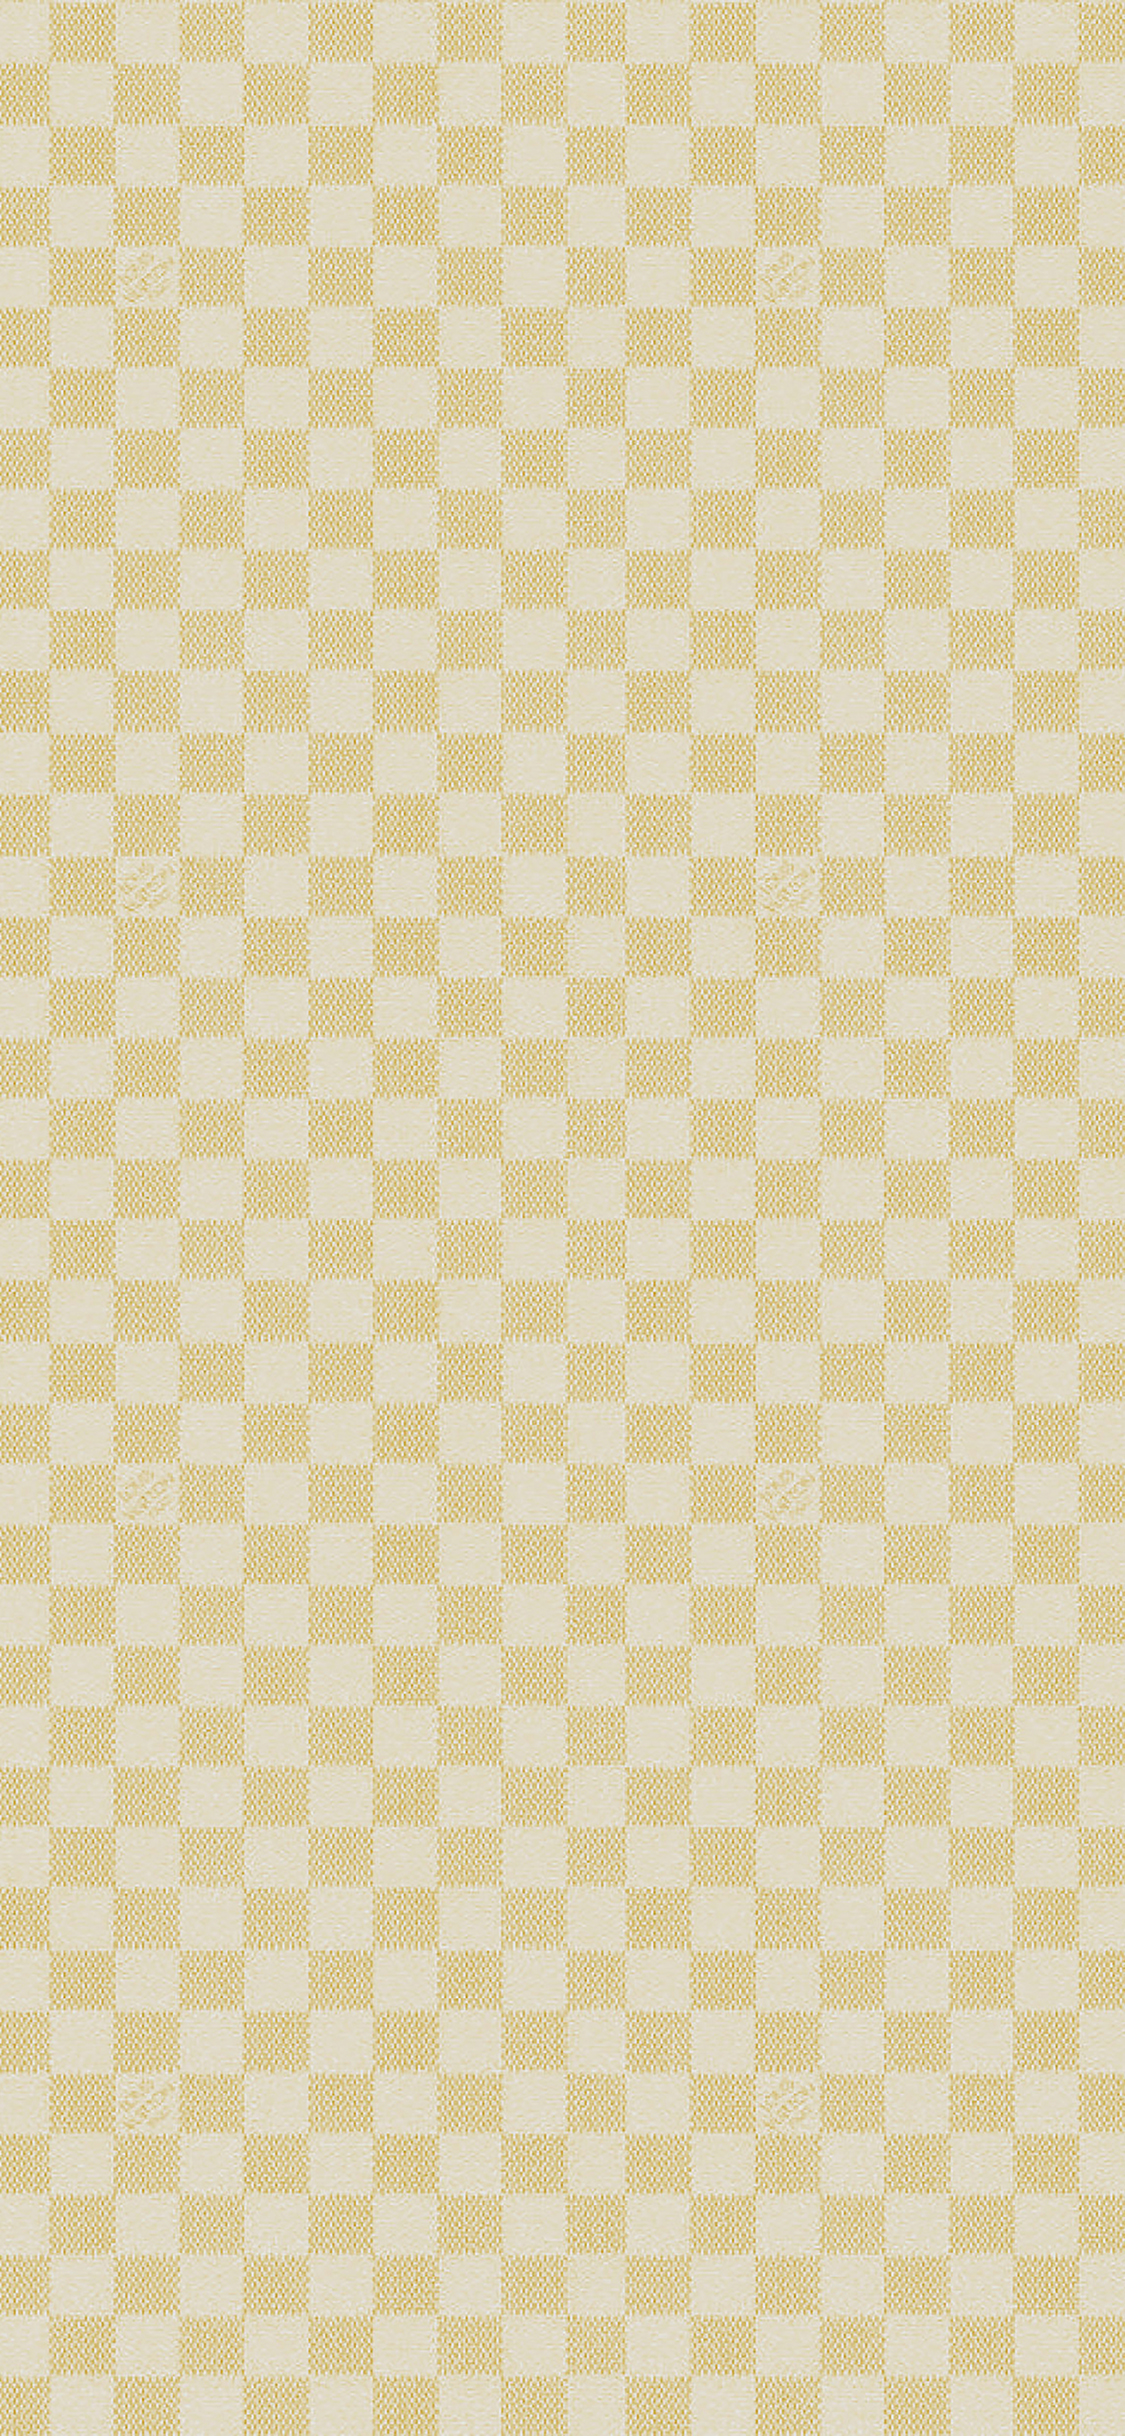 iPhoneXpapers.com-Apple-iPhone-wallpaper-vc27-checkers-pattern-gold-texture